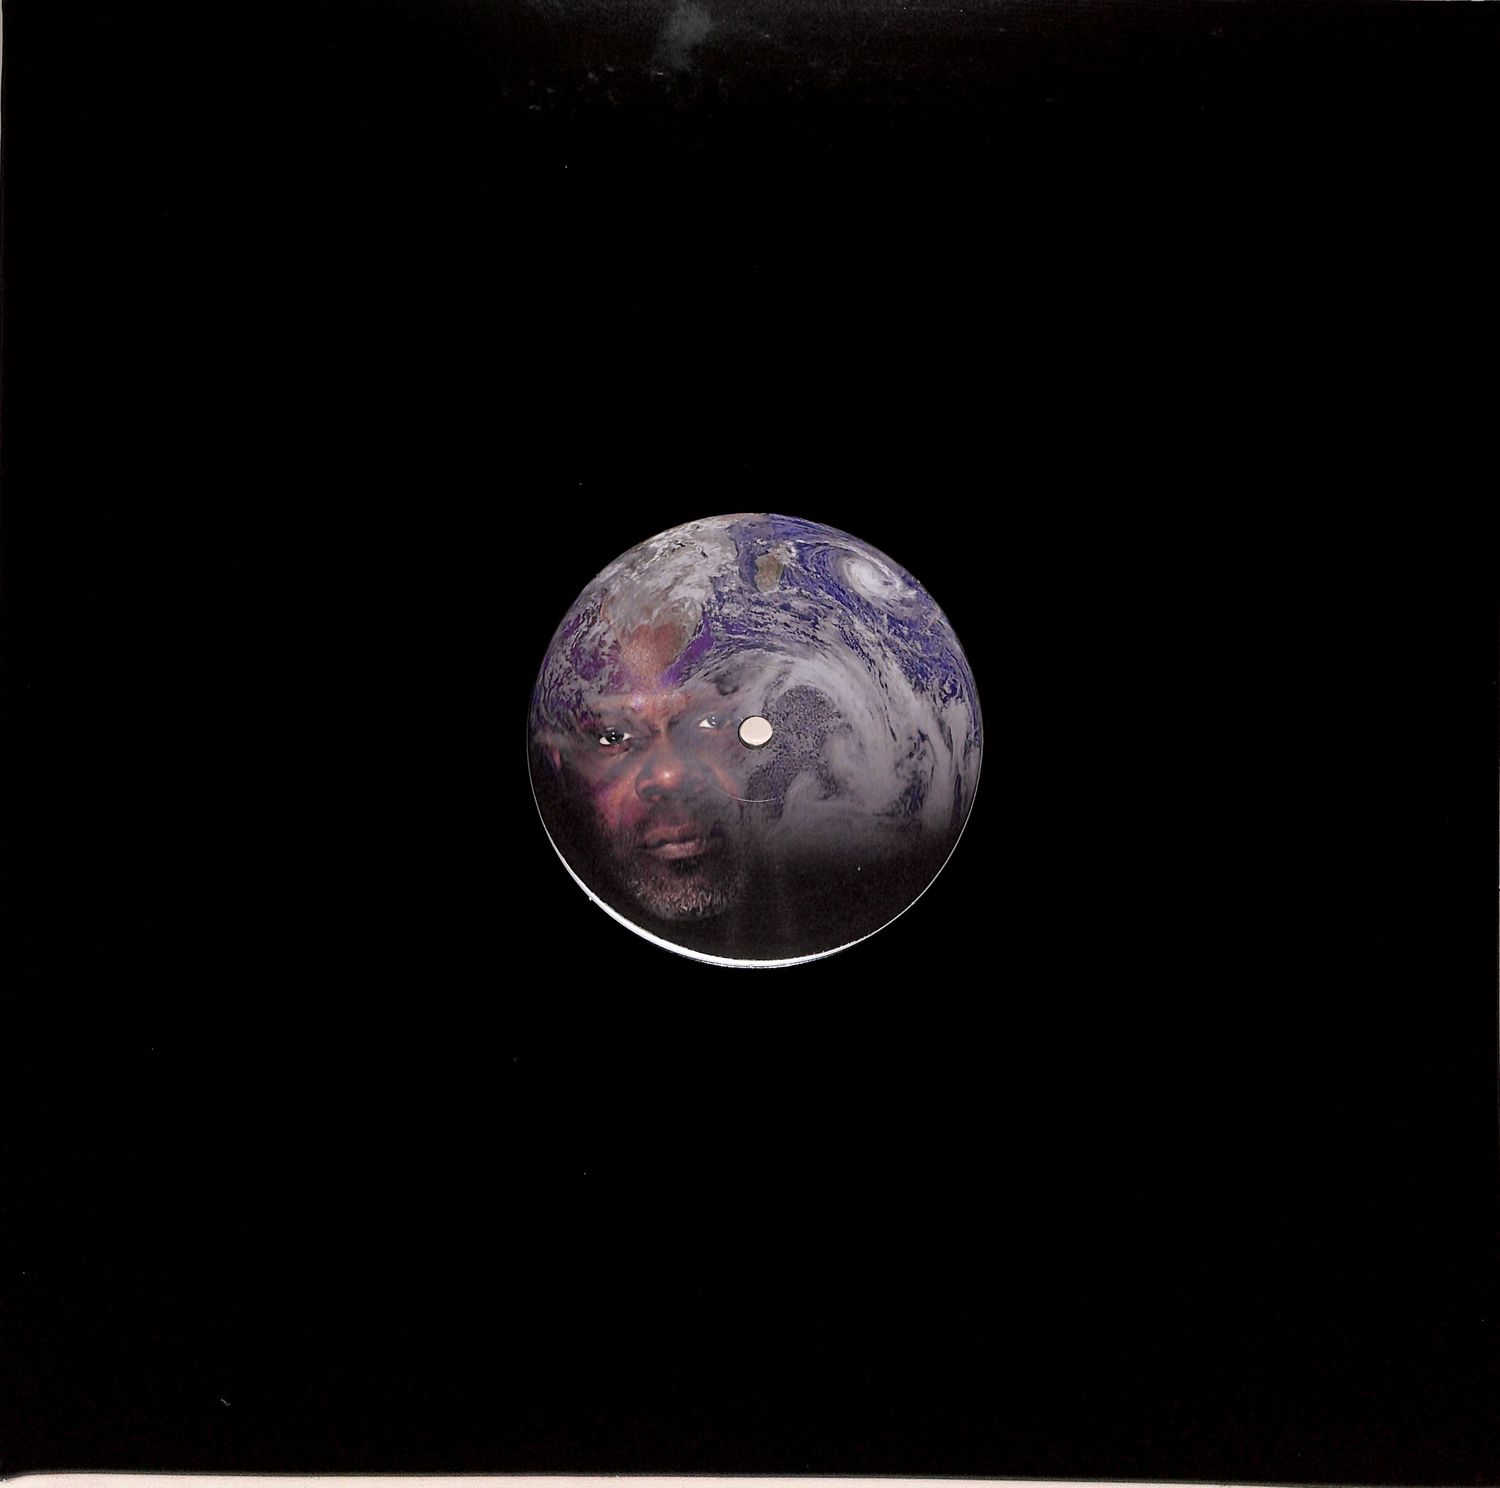 Vick Lavender - THIRD PLANET FROM THE SUN